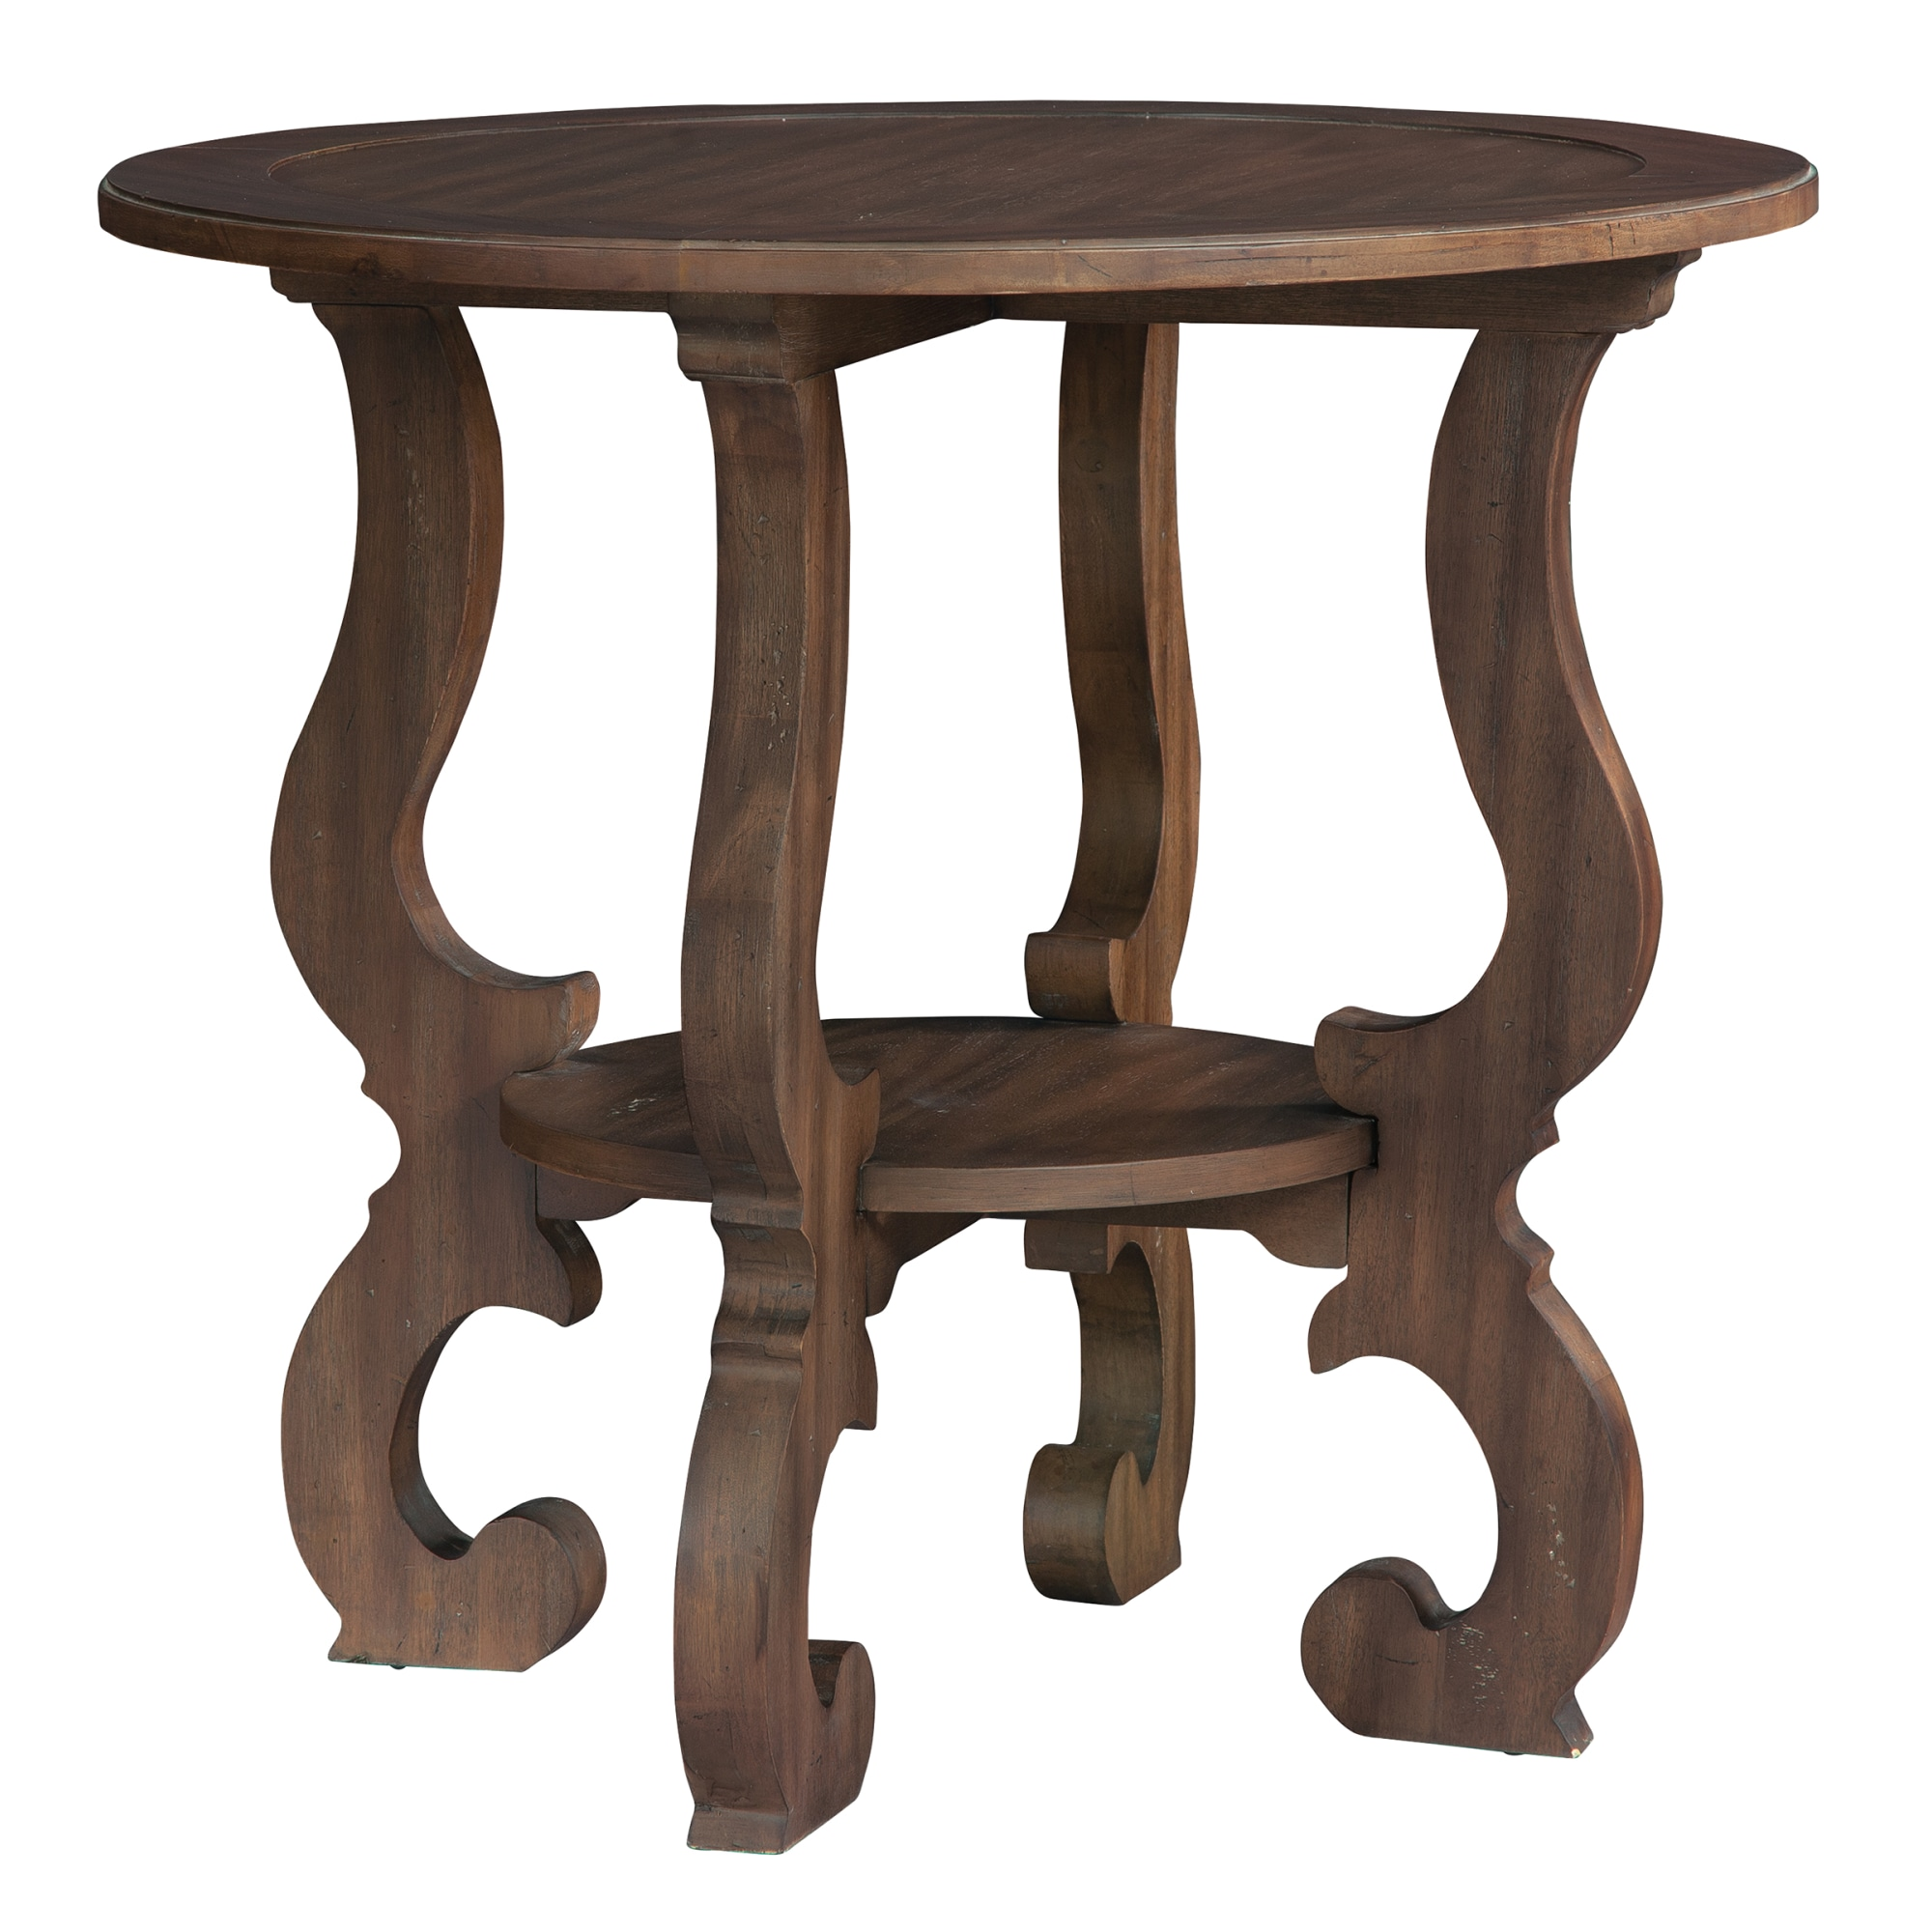 Image for 1-6106 Napa Valley Baroque Round Lamp Table from Hekman Official Website